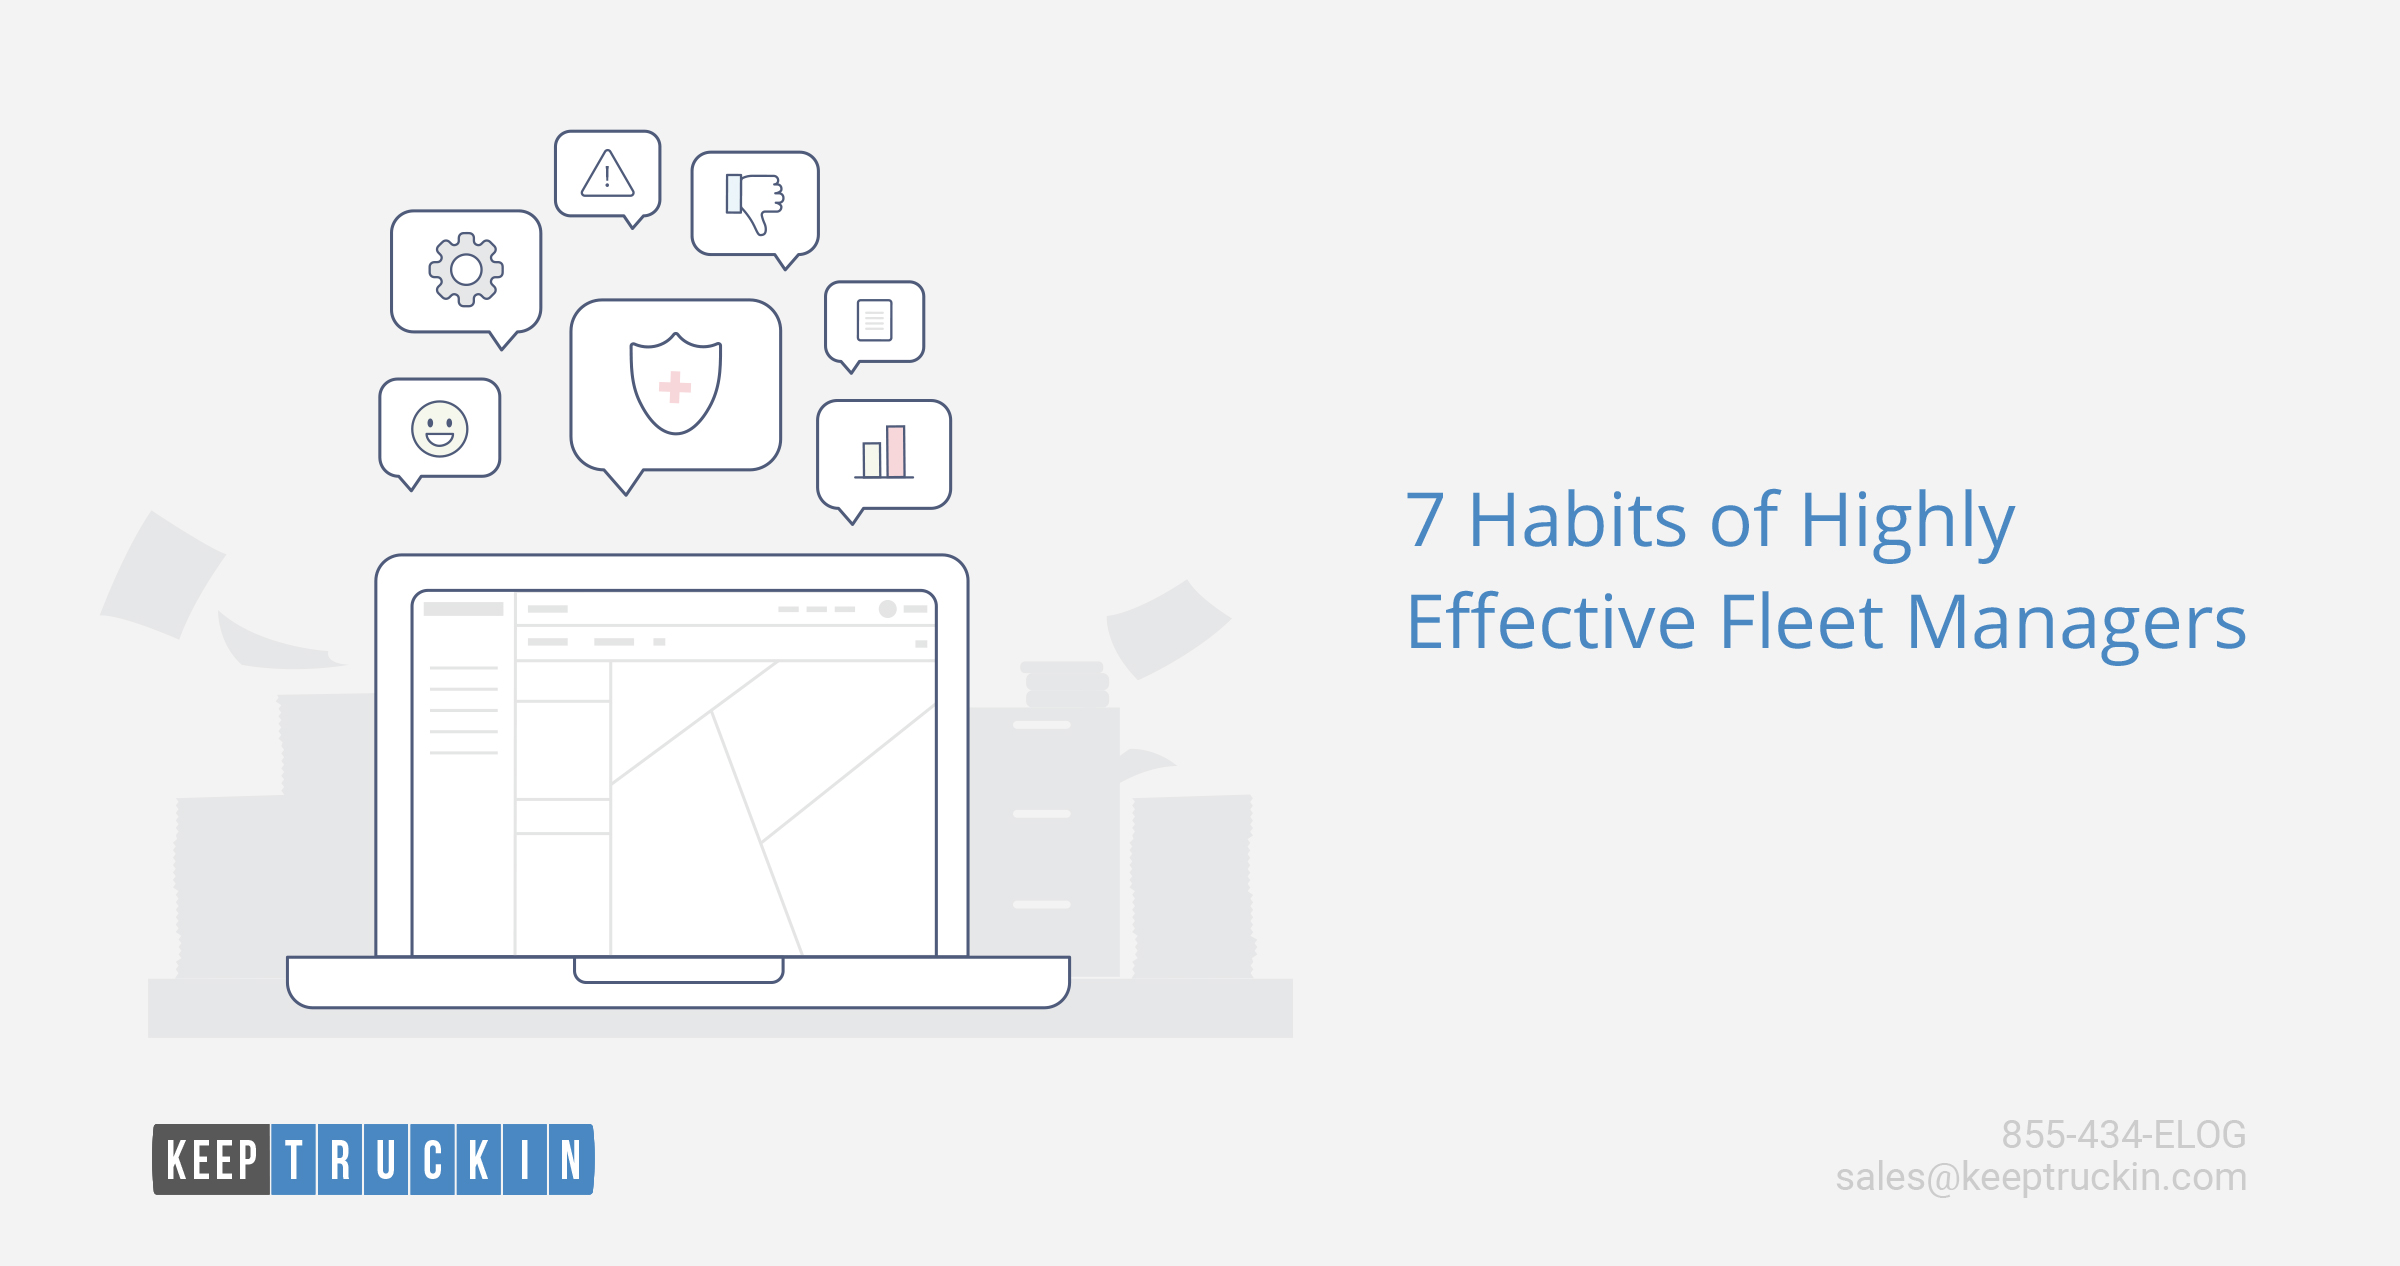 7 Habits of Highly Effective Fleet Managers